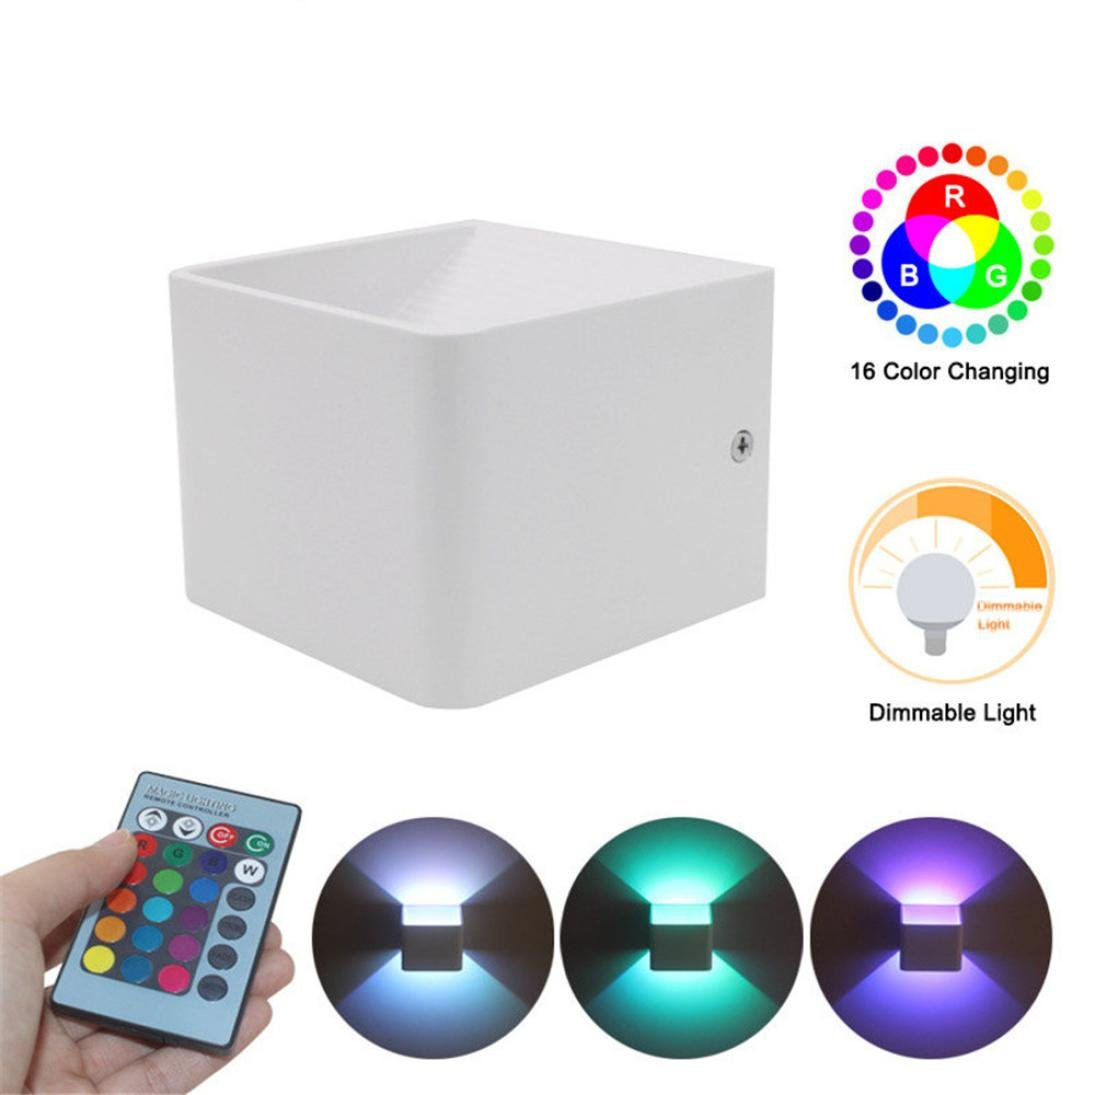 Iuhan Wall Sconces, Wall Lights LED 3W Aluminum Colorful RGB Light Wall Sconces Home Decoration (white)